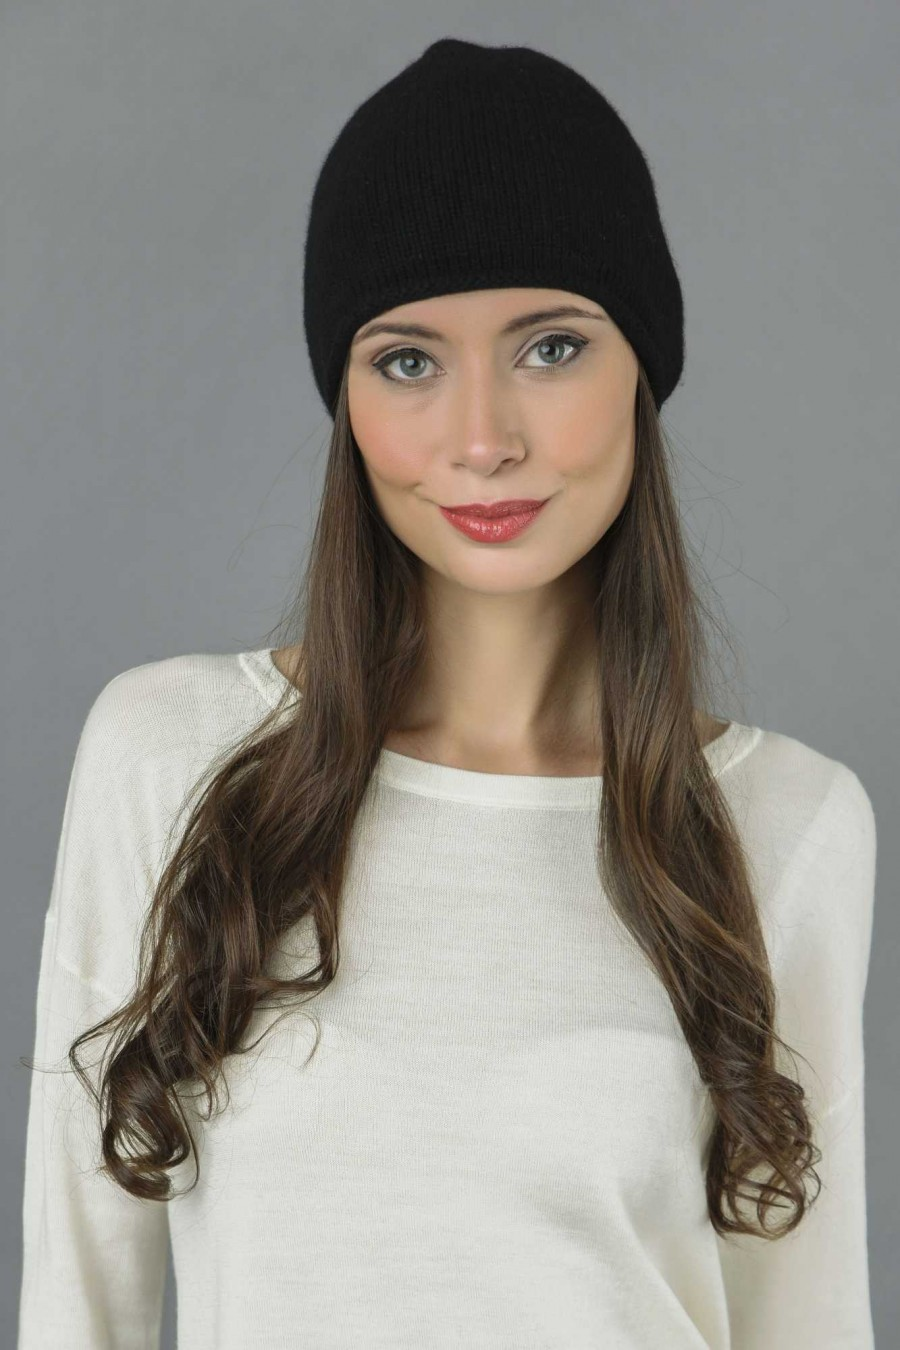 Pure Cashmere Plain Knitted Beanie Hat in Black 2 51afbdaeac1